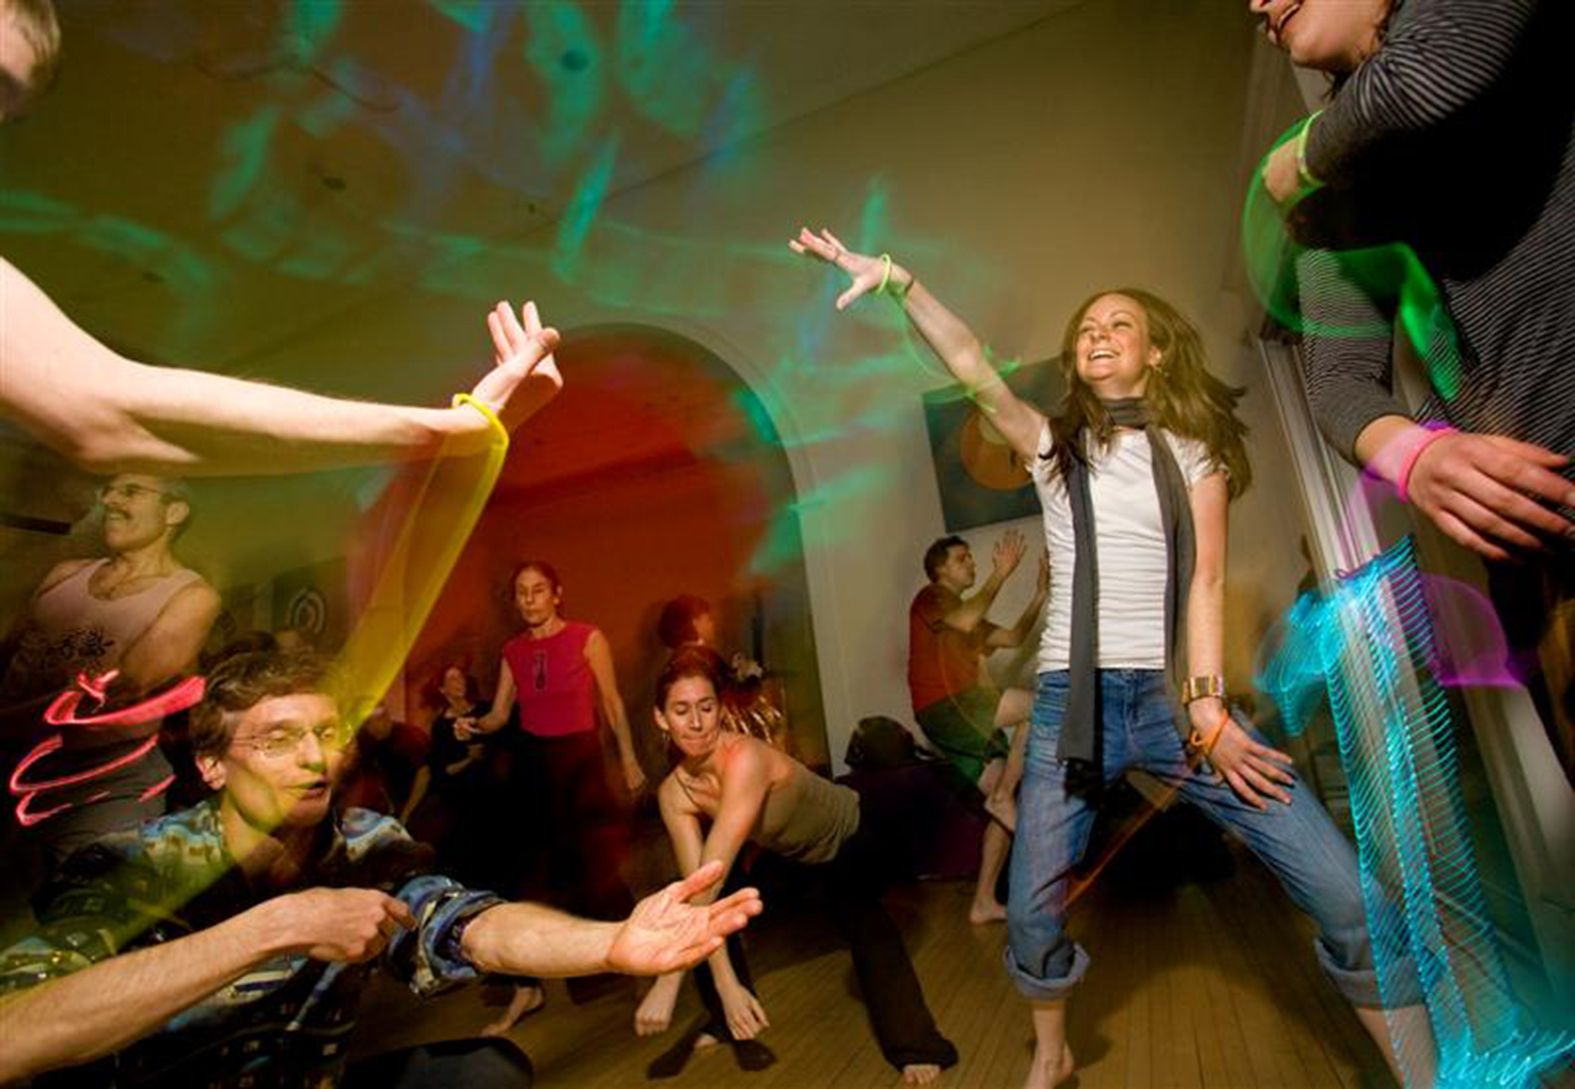 Cheap therapy dance deals